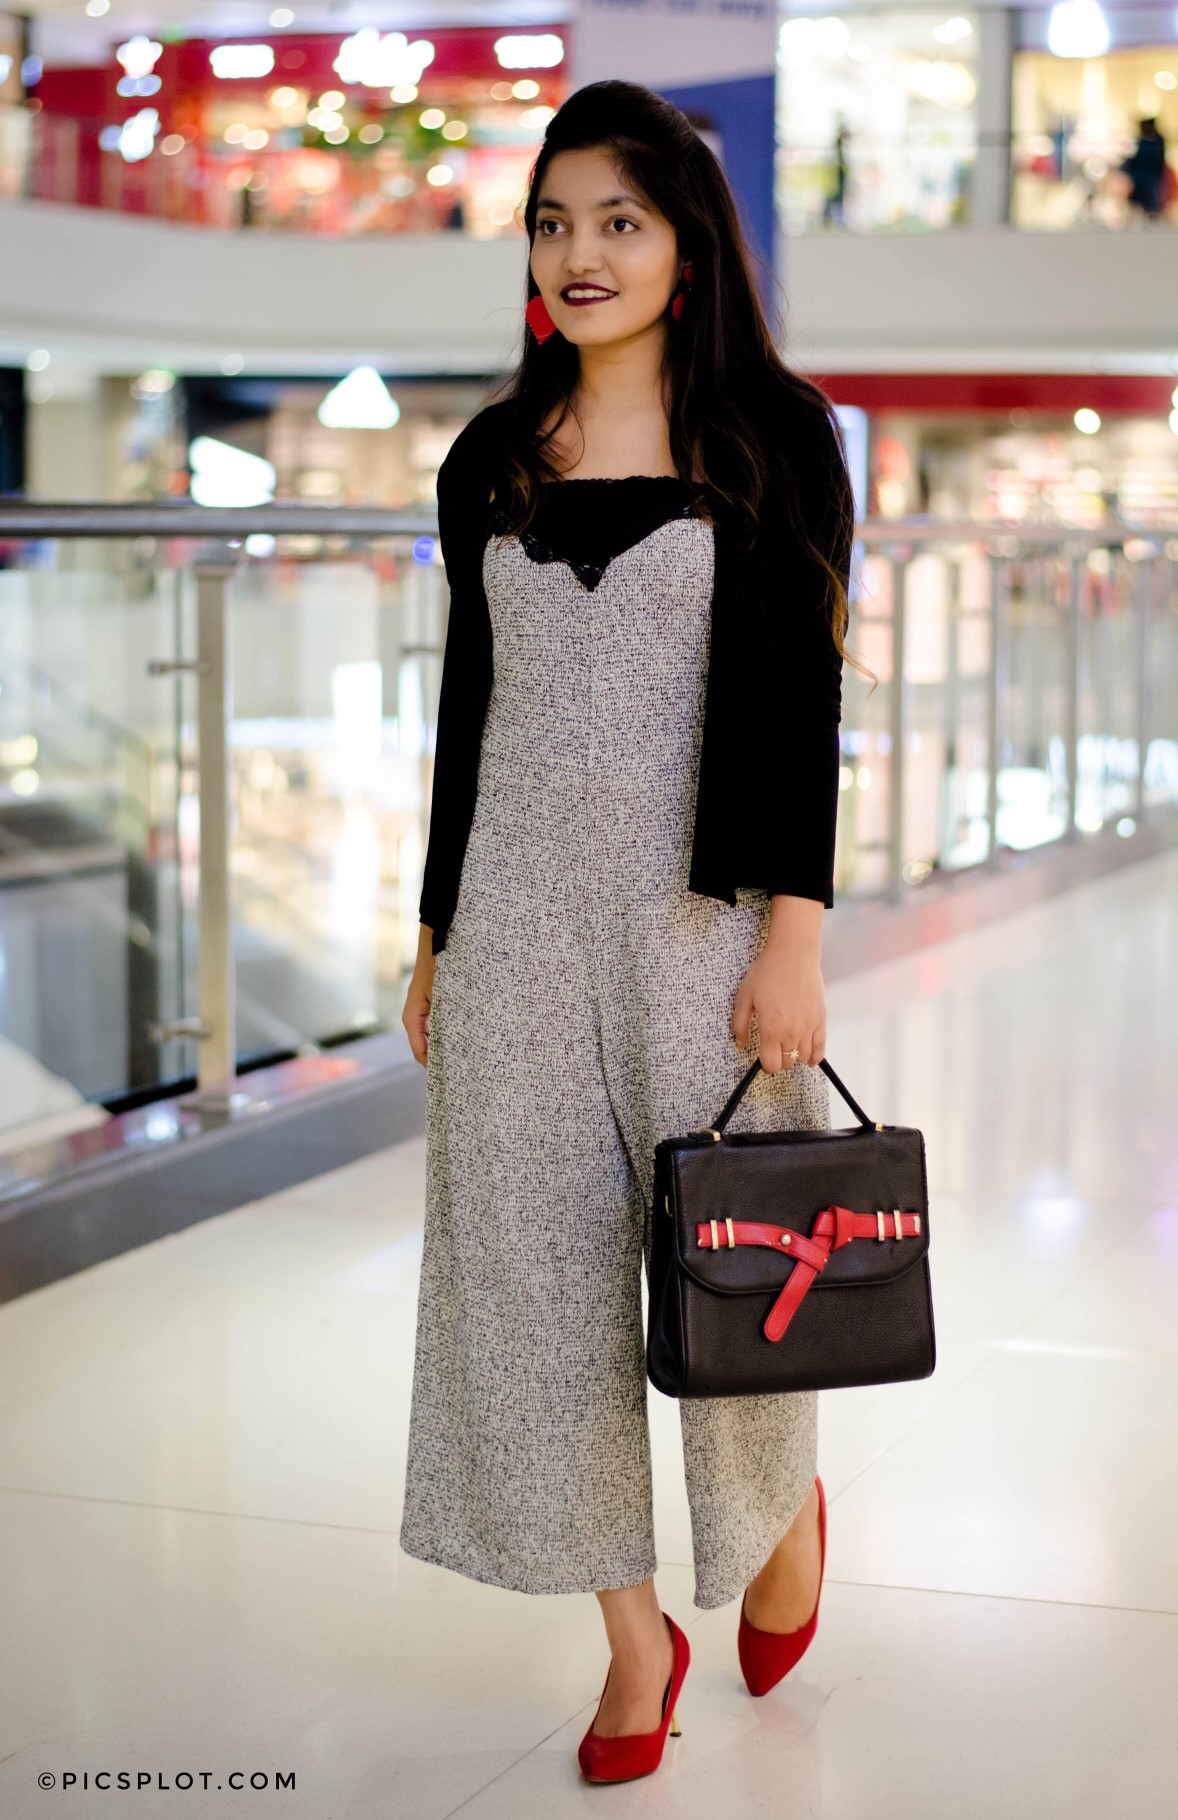 how-to-style-jumpsuits-blogger-princy-mascarenhas (1178 x 1820)